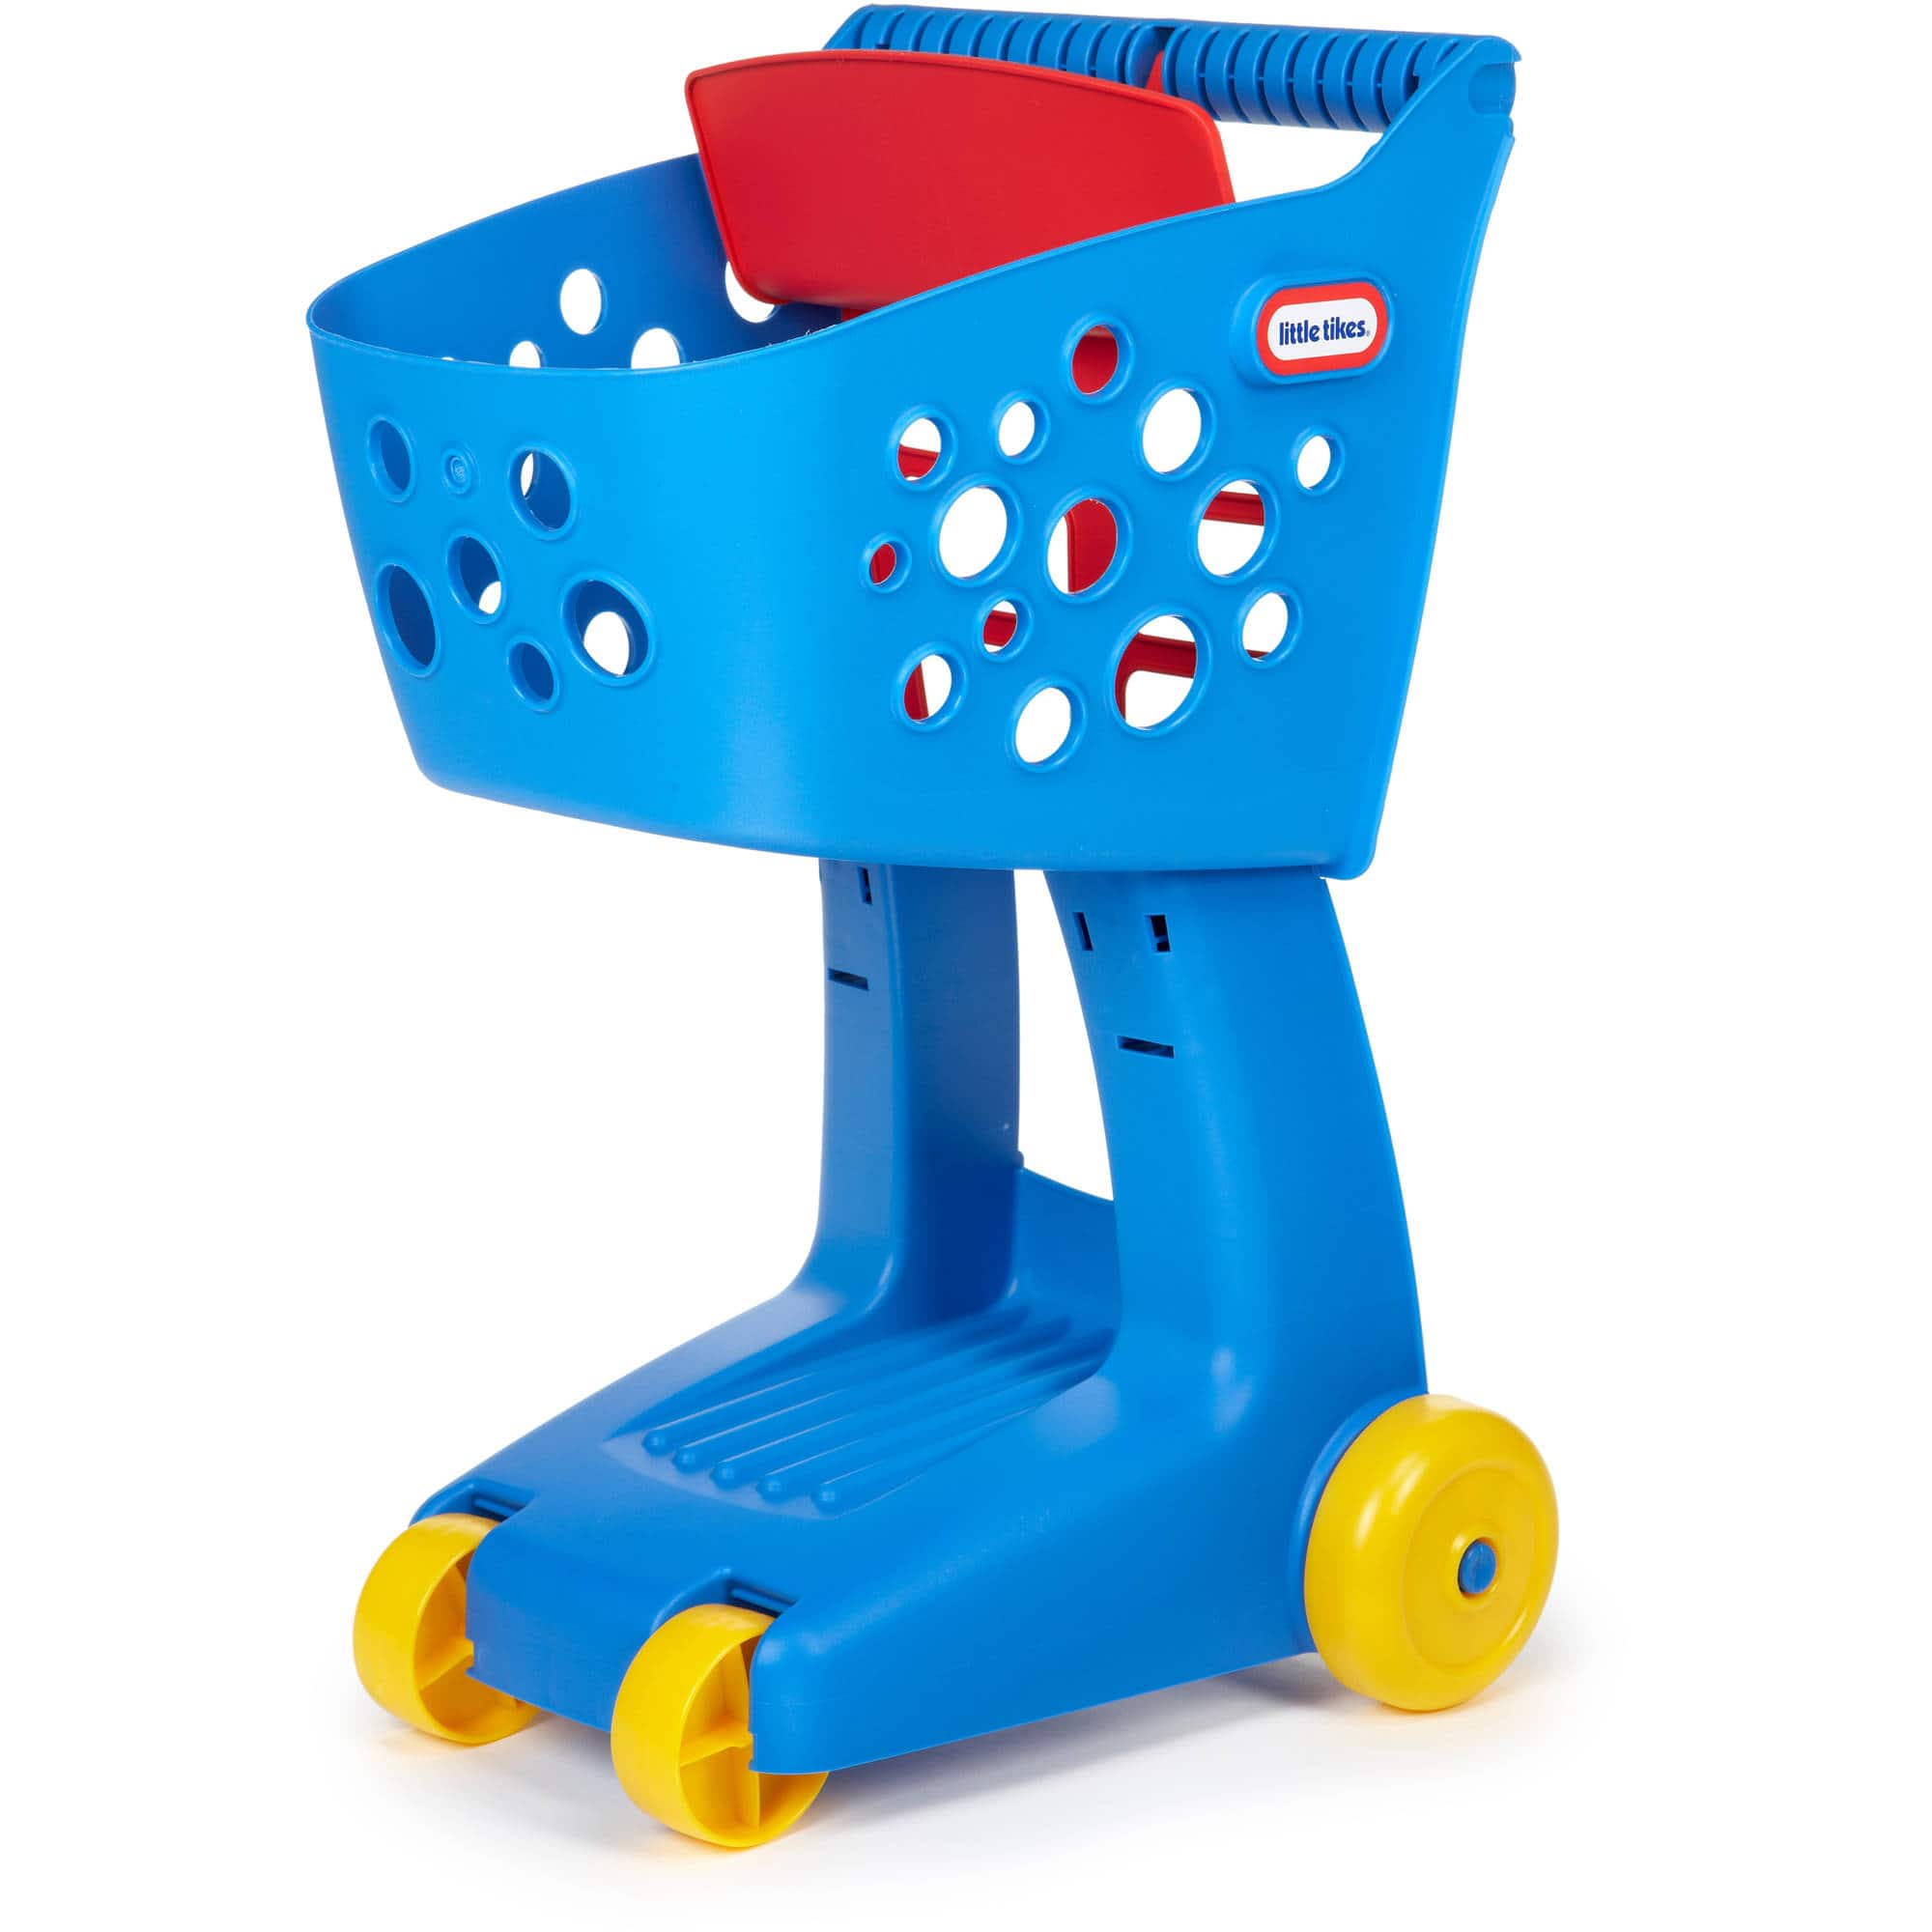 Little Tikes Lil Shopper Shopping Cart $9.98 at Walmart (free shipping on $35 or more) Blue or Pink